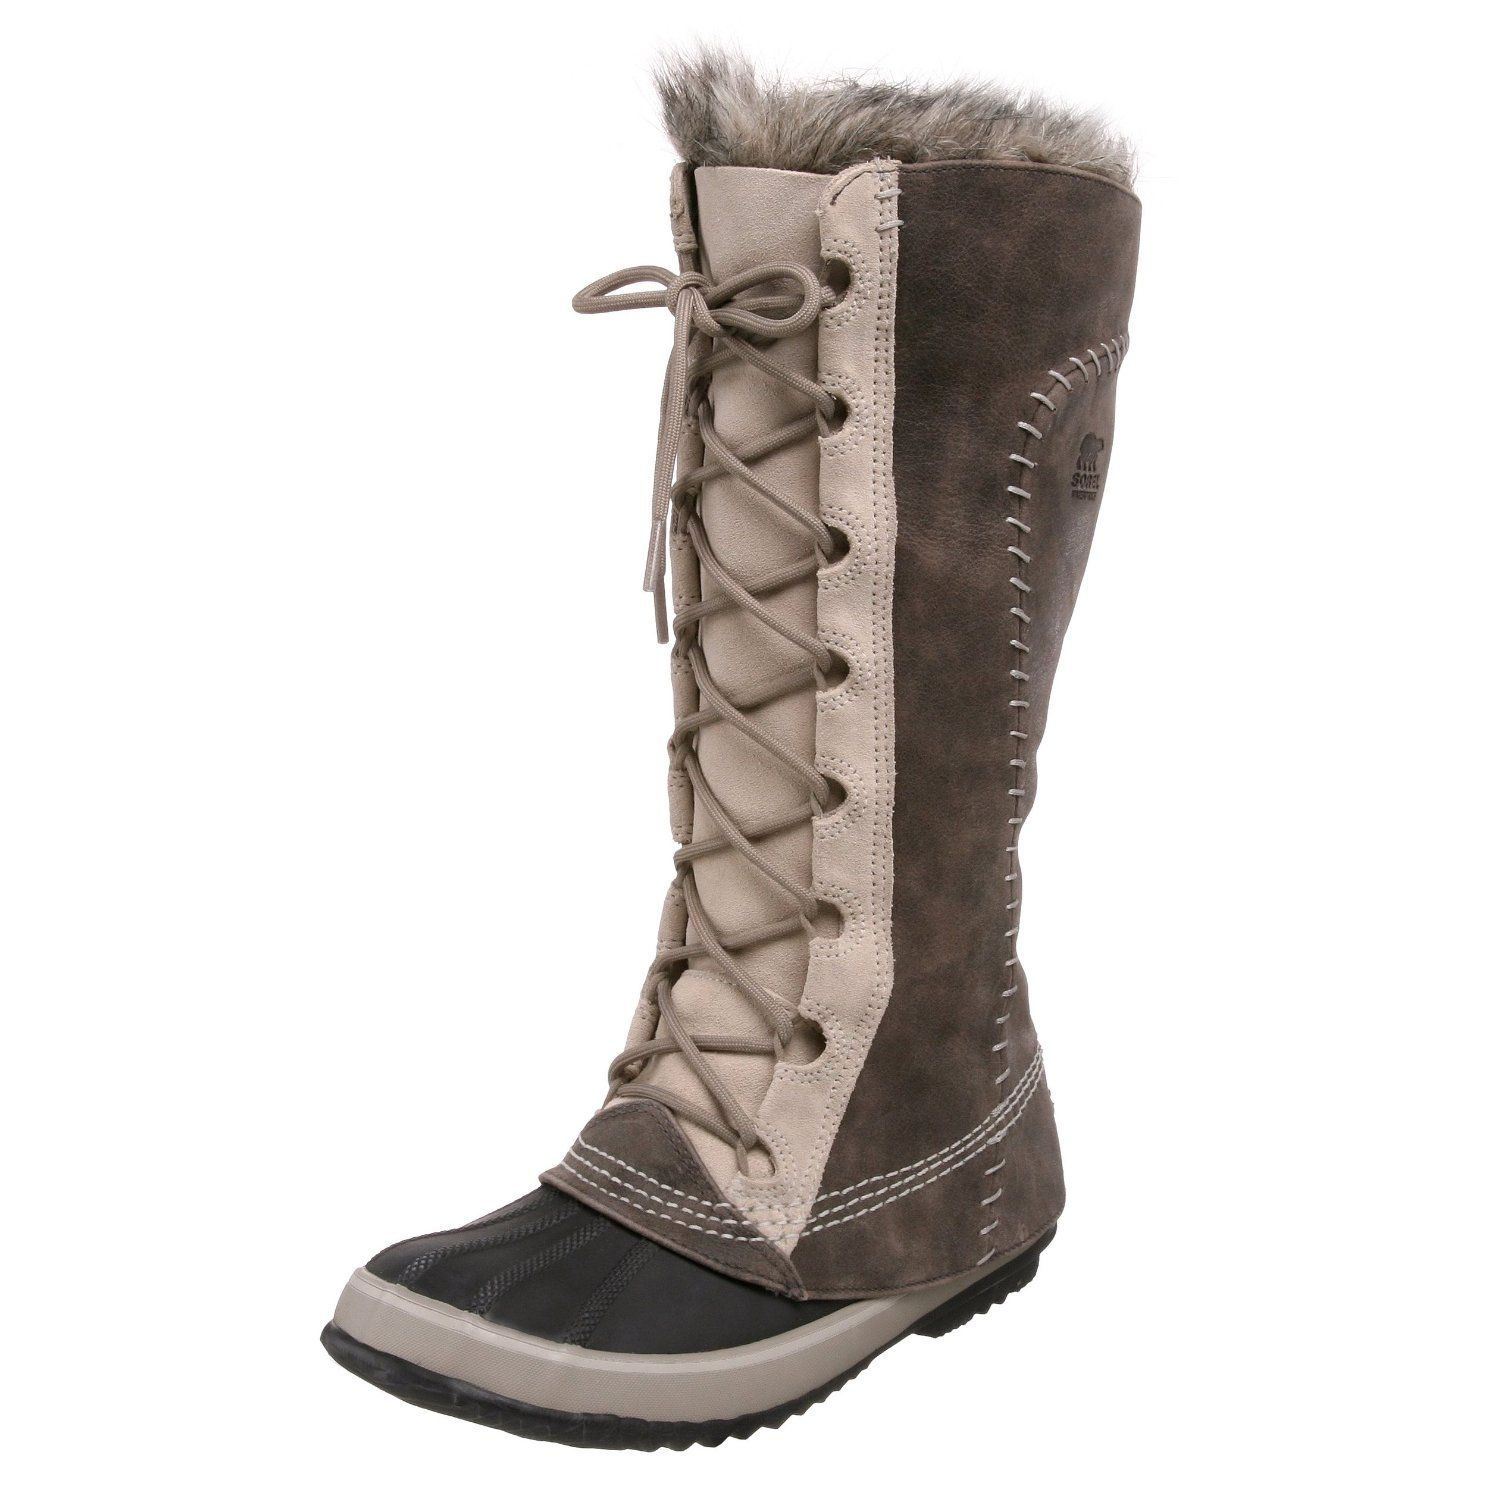 Where To Buy Snow Boots - Boot 2017